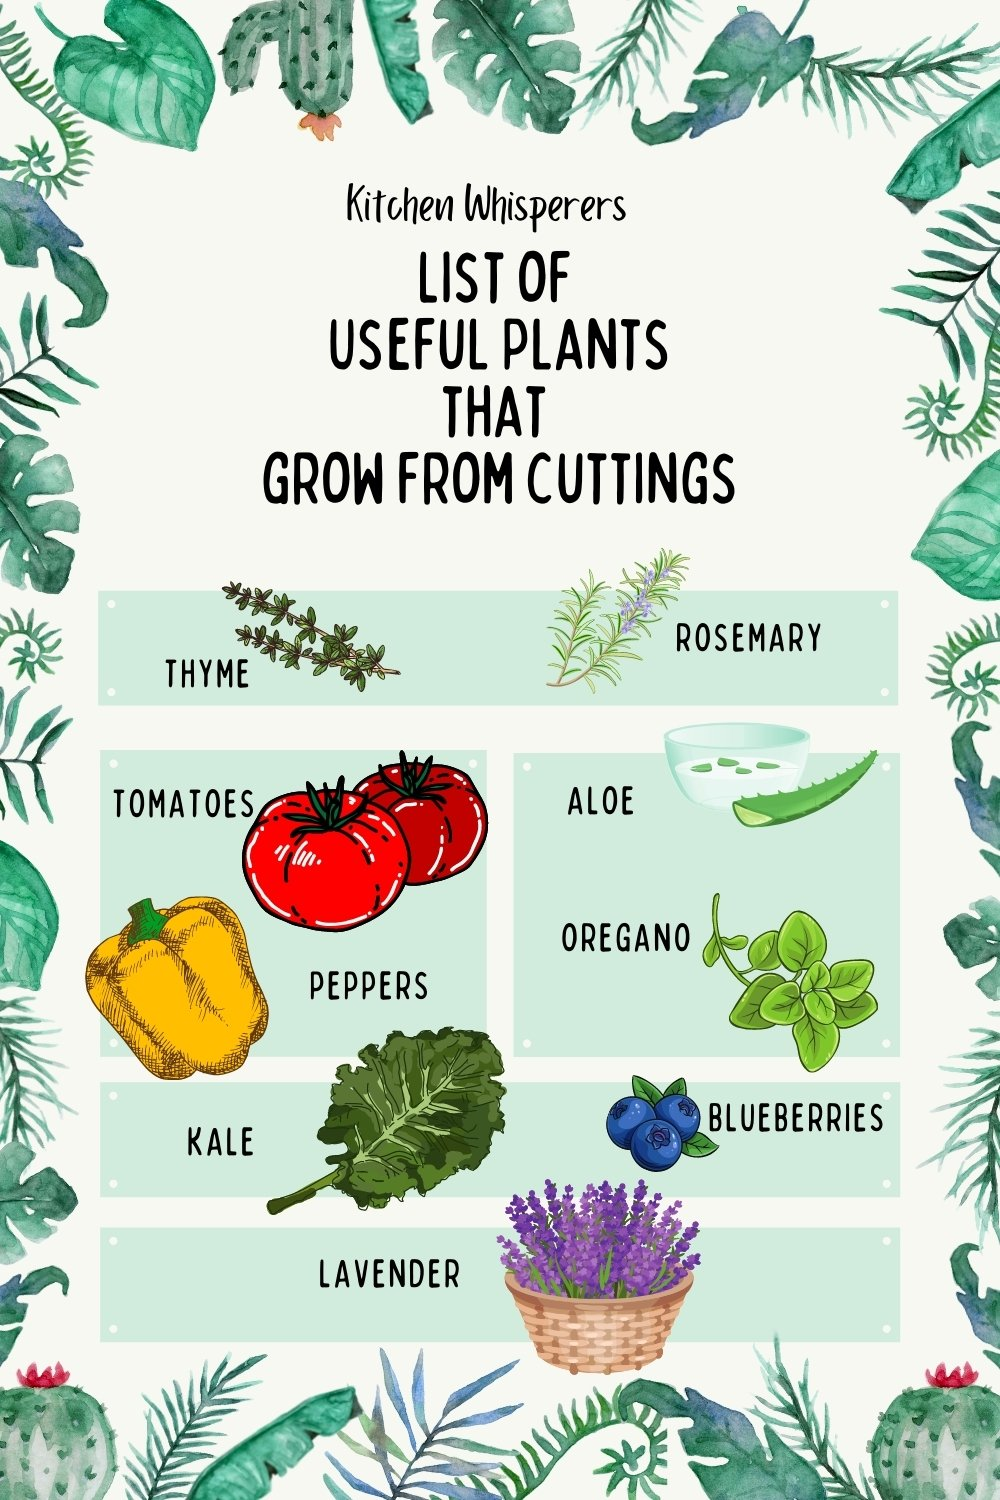 List of plants that grow from cuttings